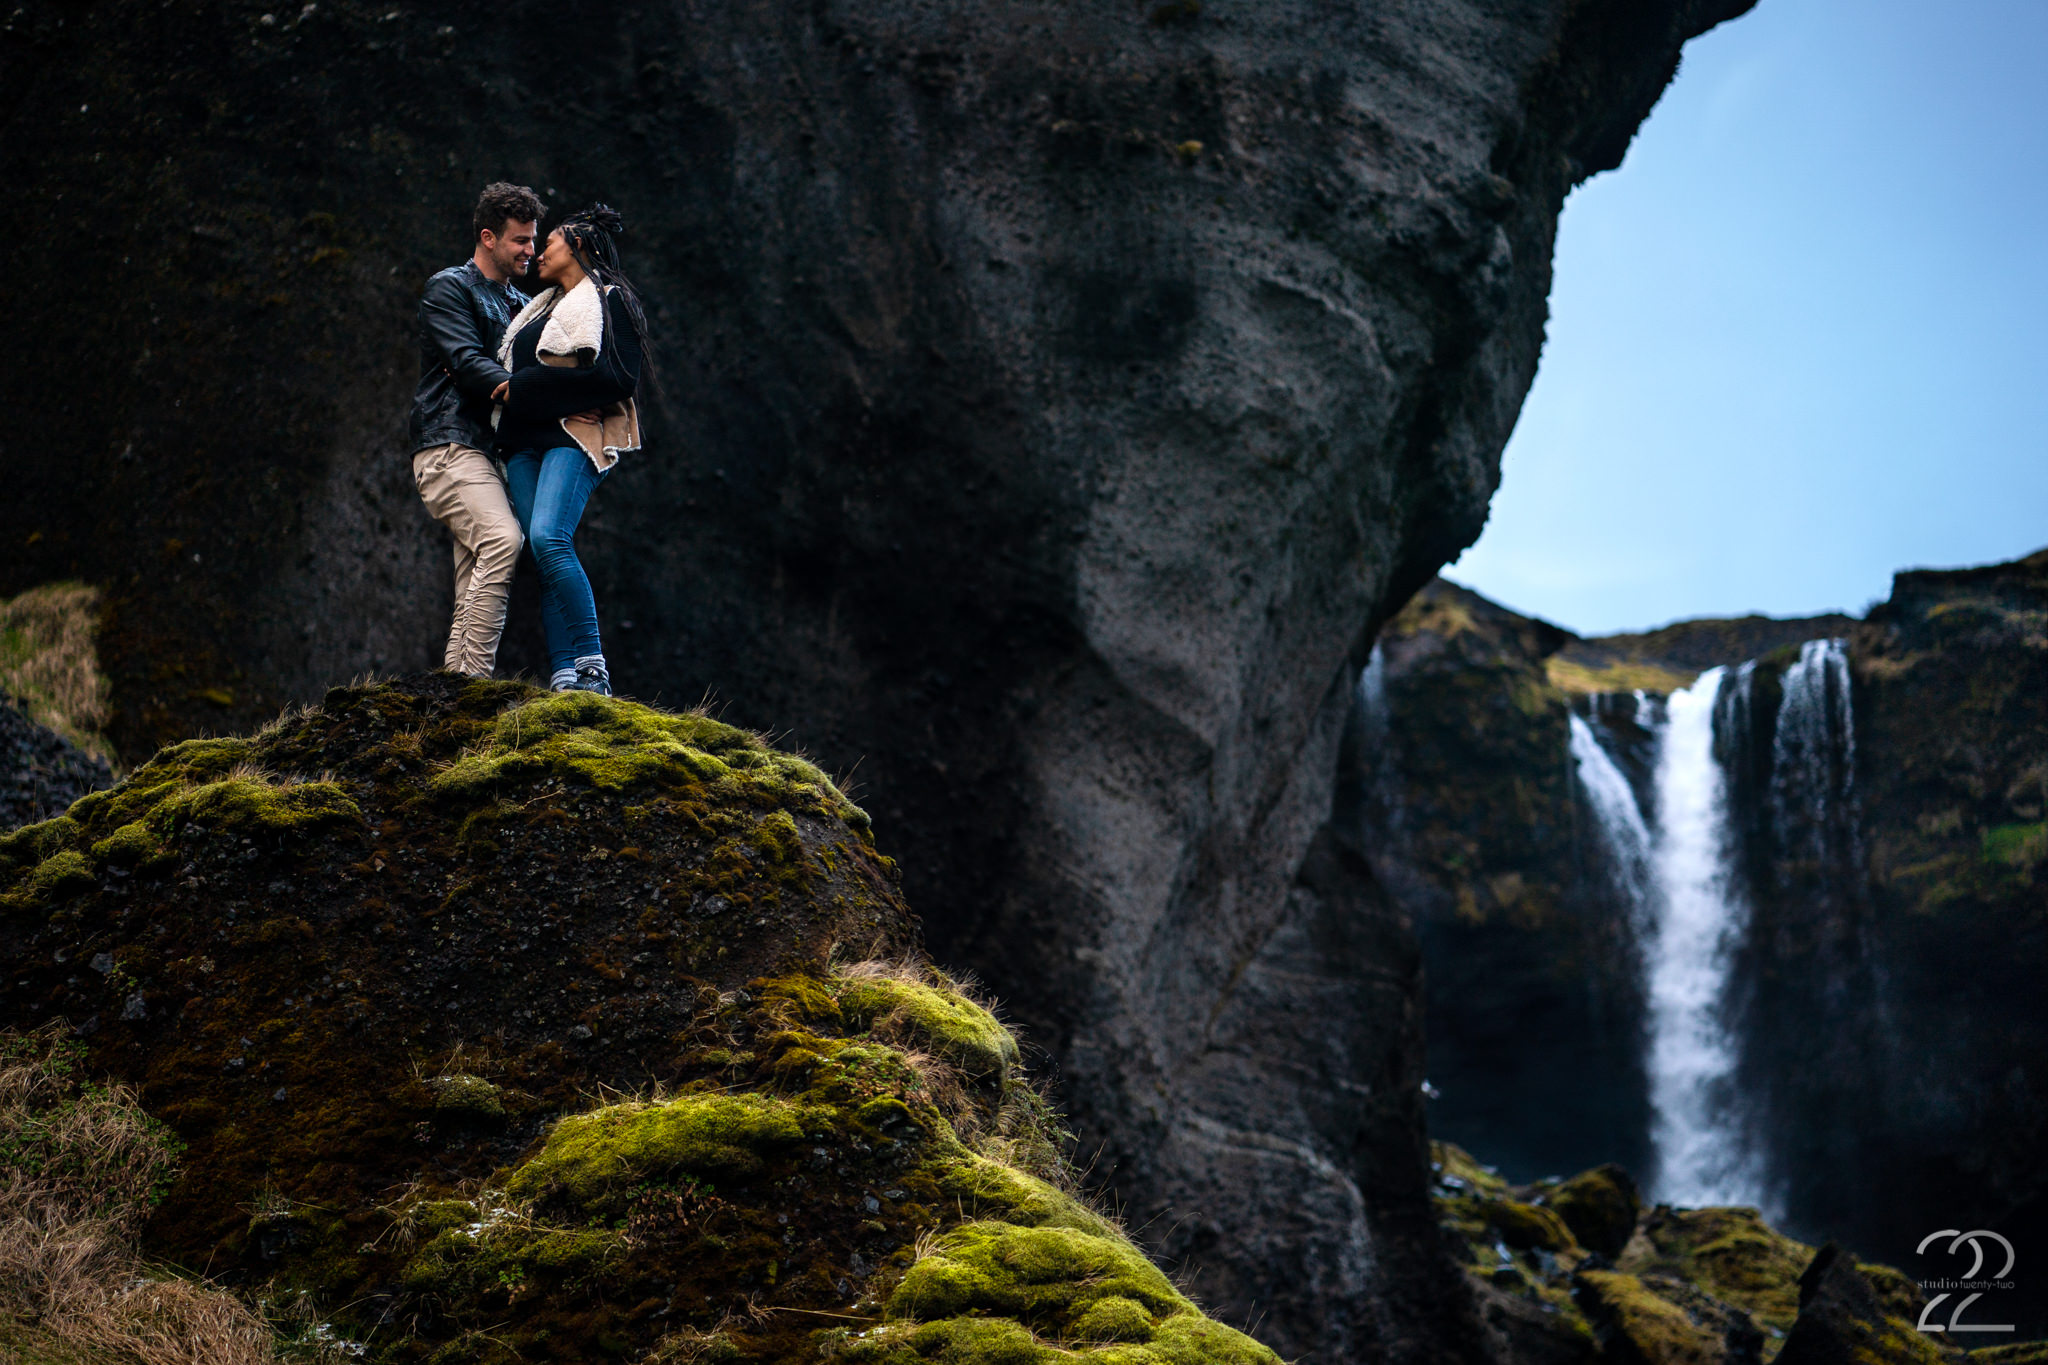 Vik Iceland Engagement Photos - Studio 22 Photography